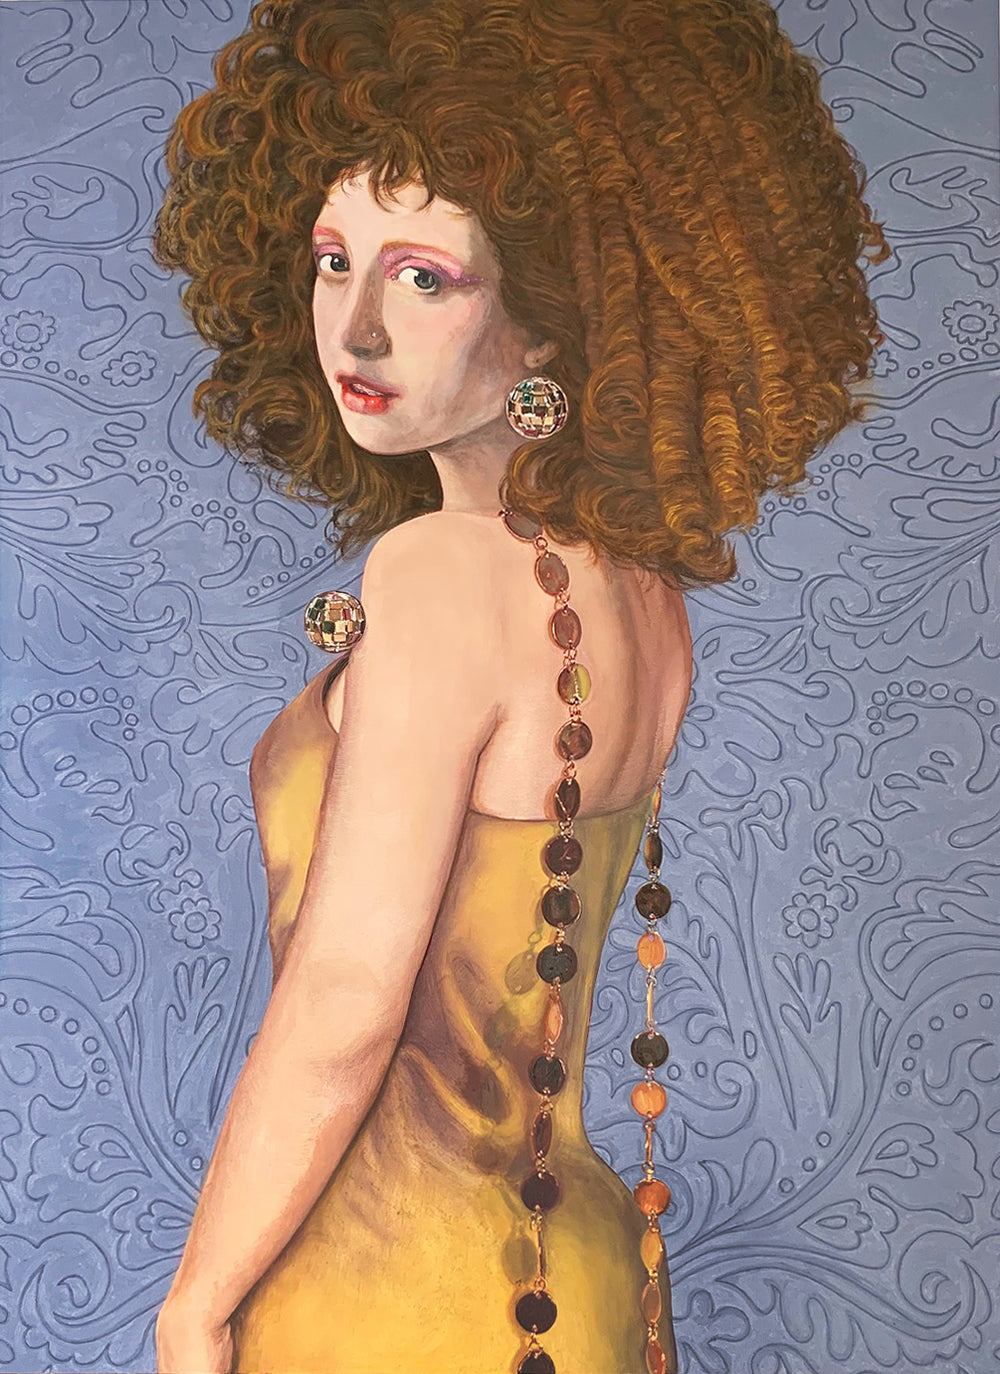 Painting of a woman with brown curls, who's wearing a yellow dress.